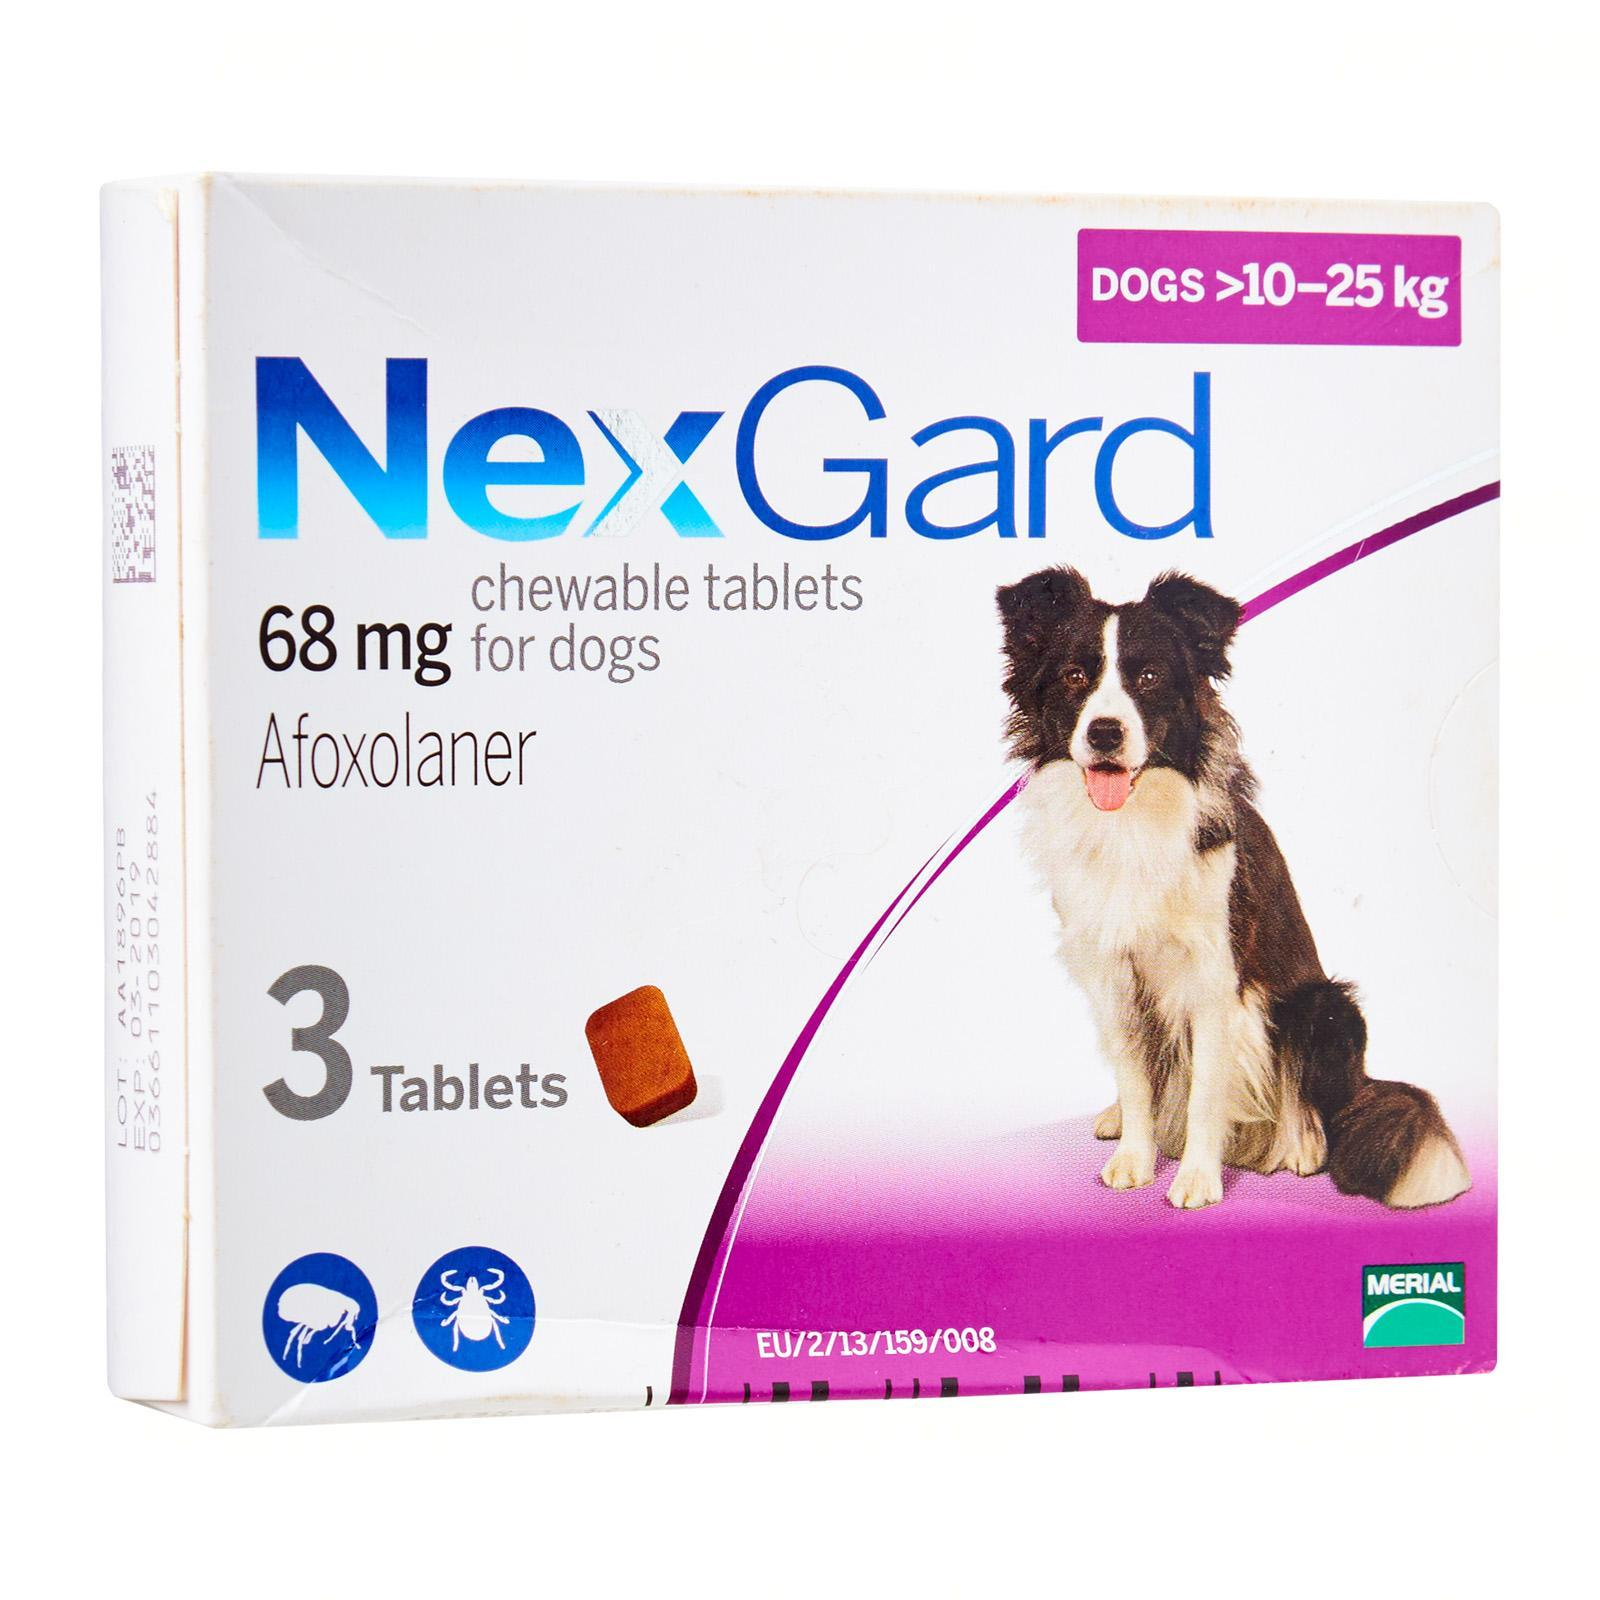 Nexgard Flea and Ticks Chewable by Frontline - 10 to 25kg